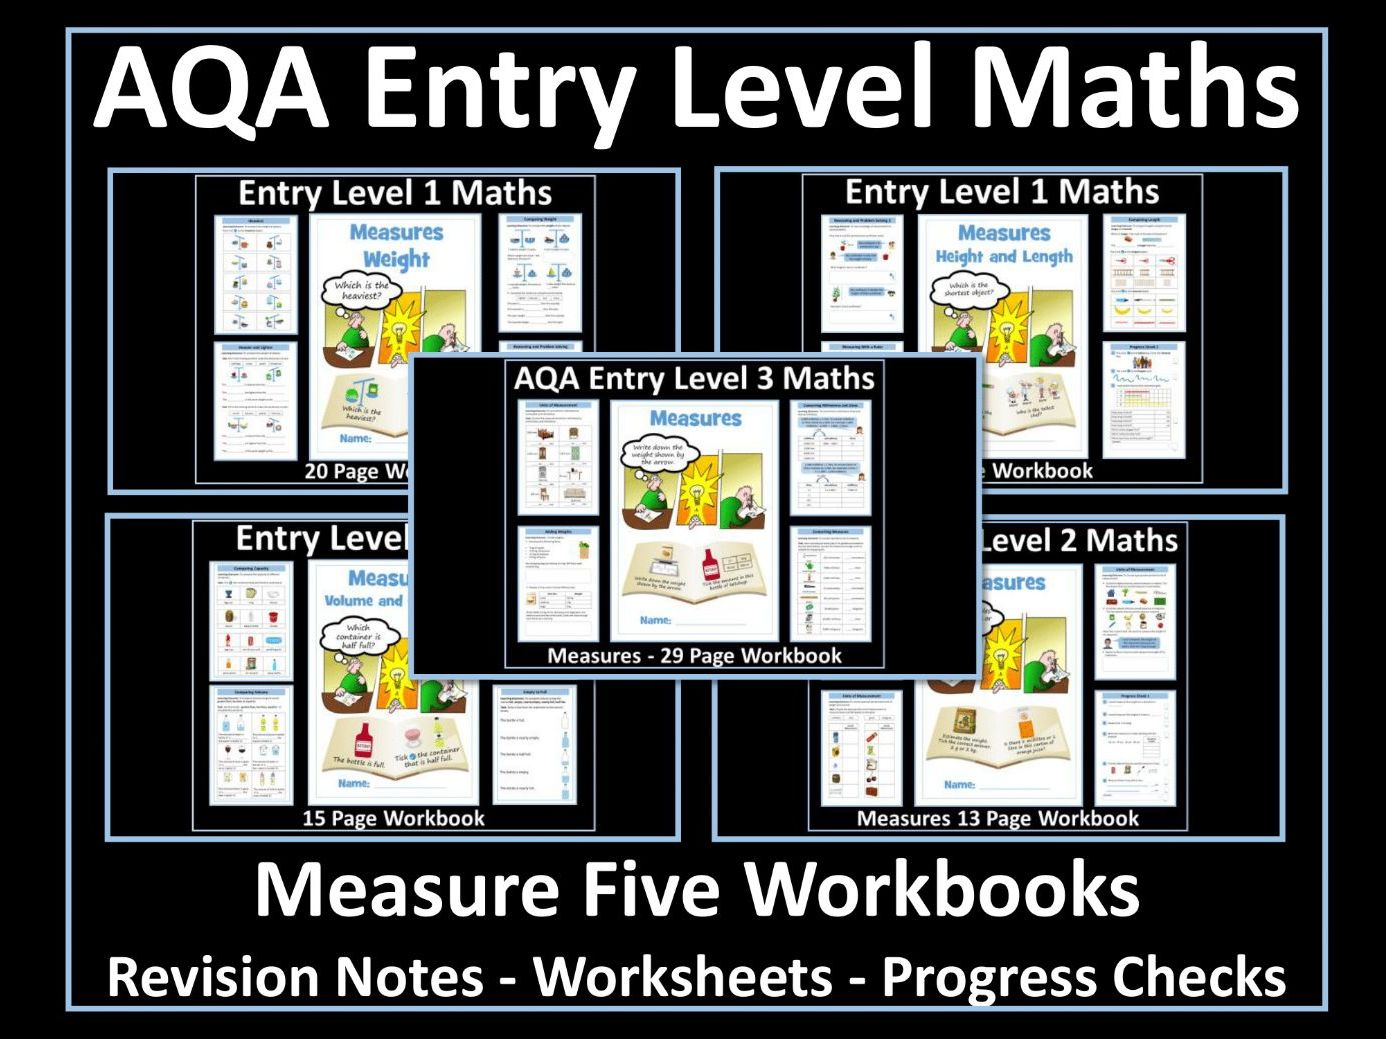 Measure AQA Entry Level Maths